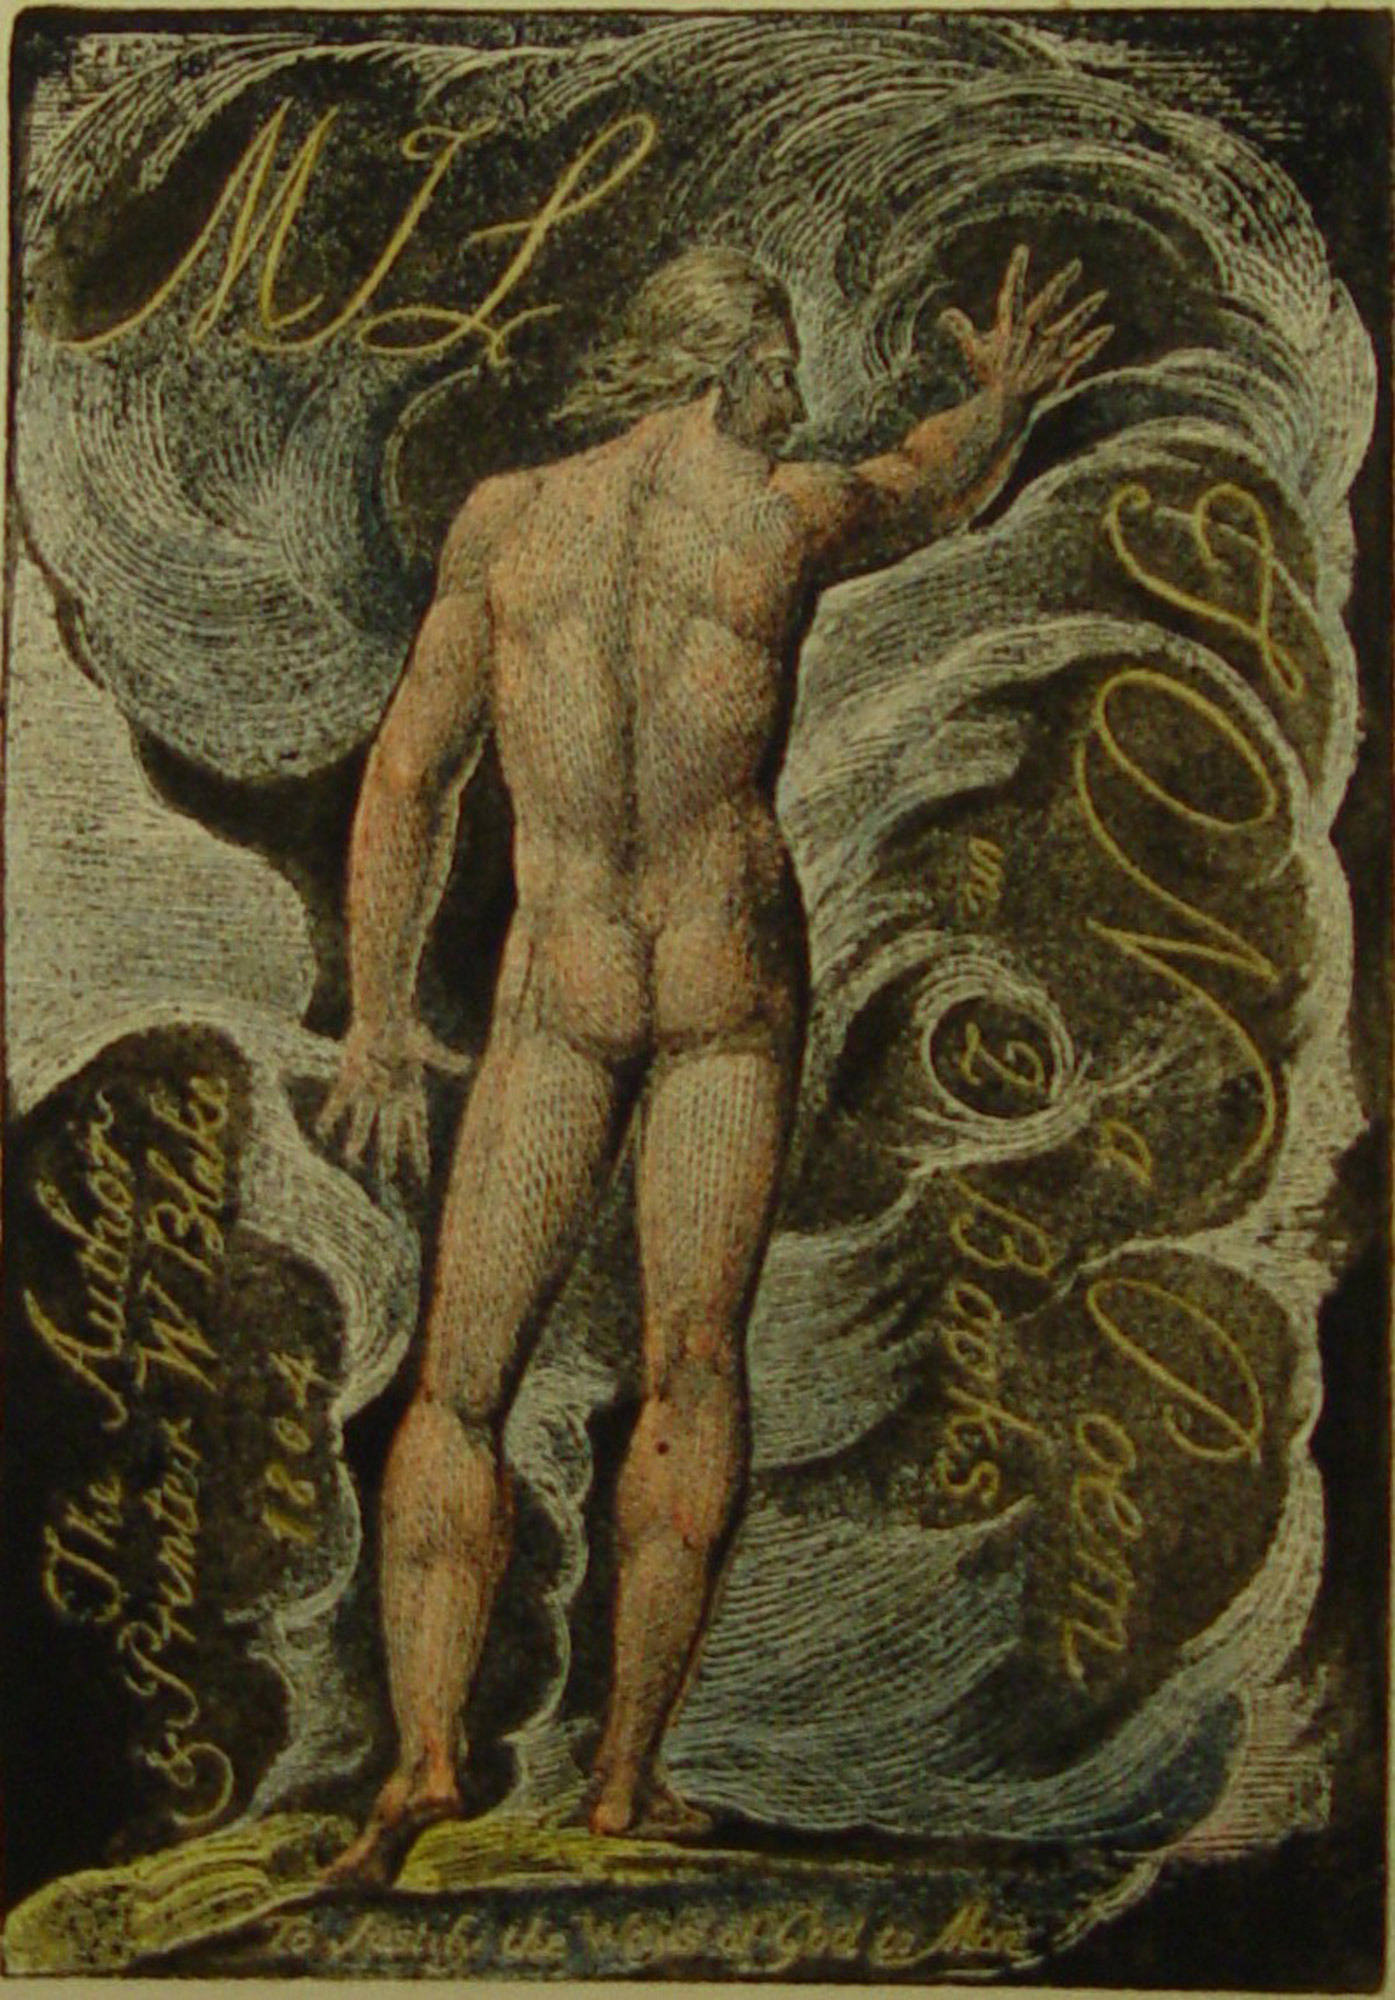 William Blake's Milton